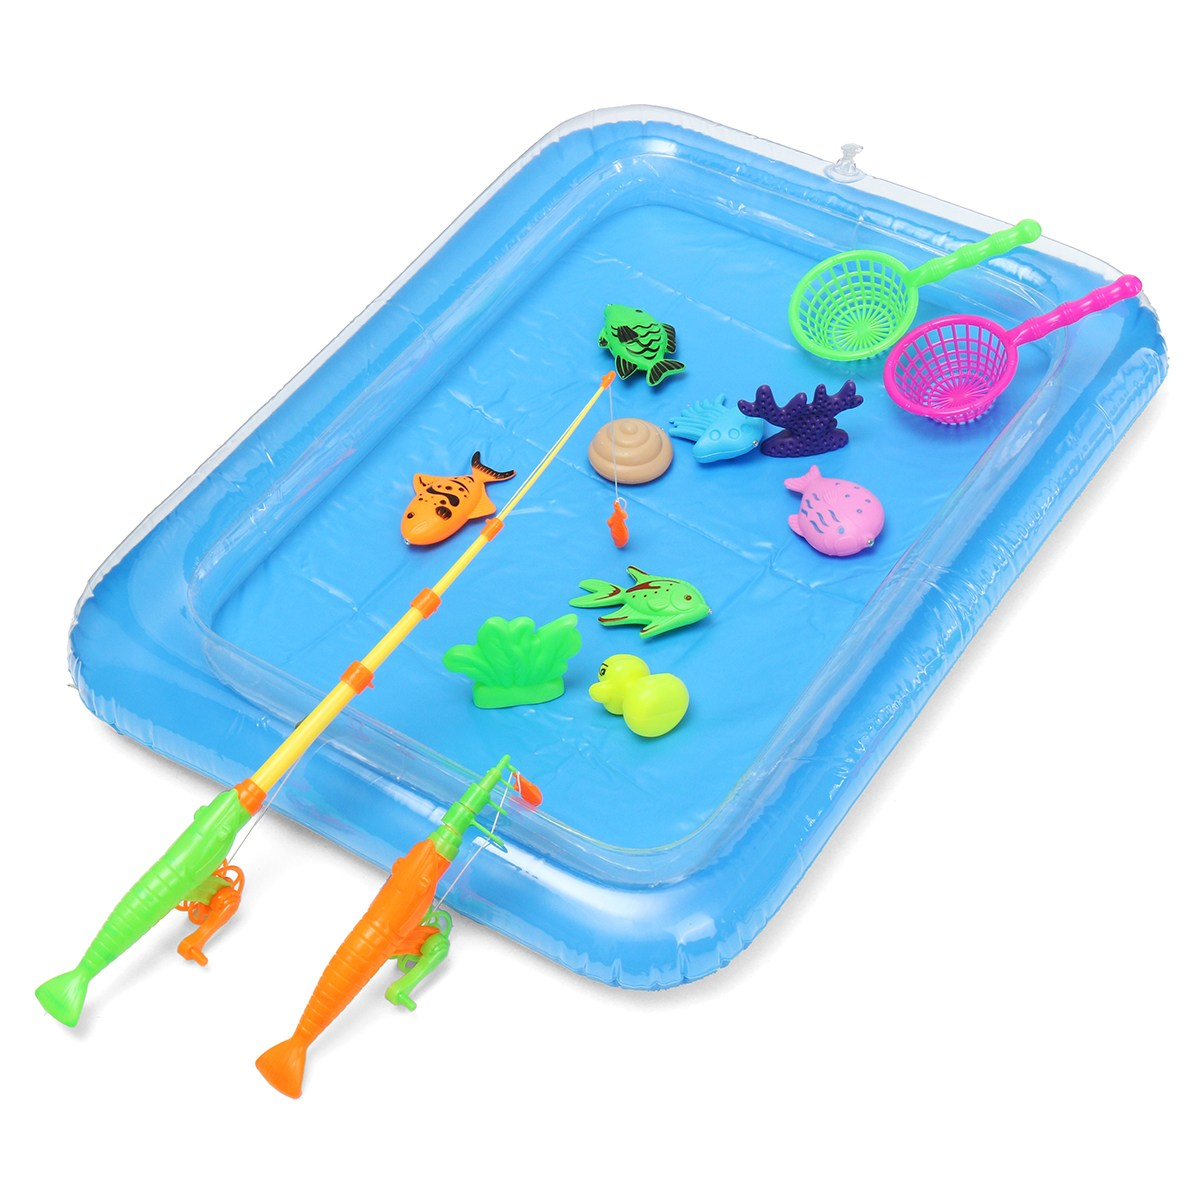 39pcs/Set New Fish Inflated Pond Game Magnetic Fishing Pole Rod 3D ...